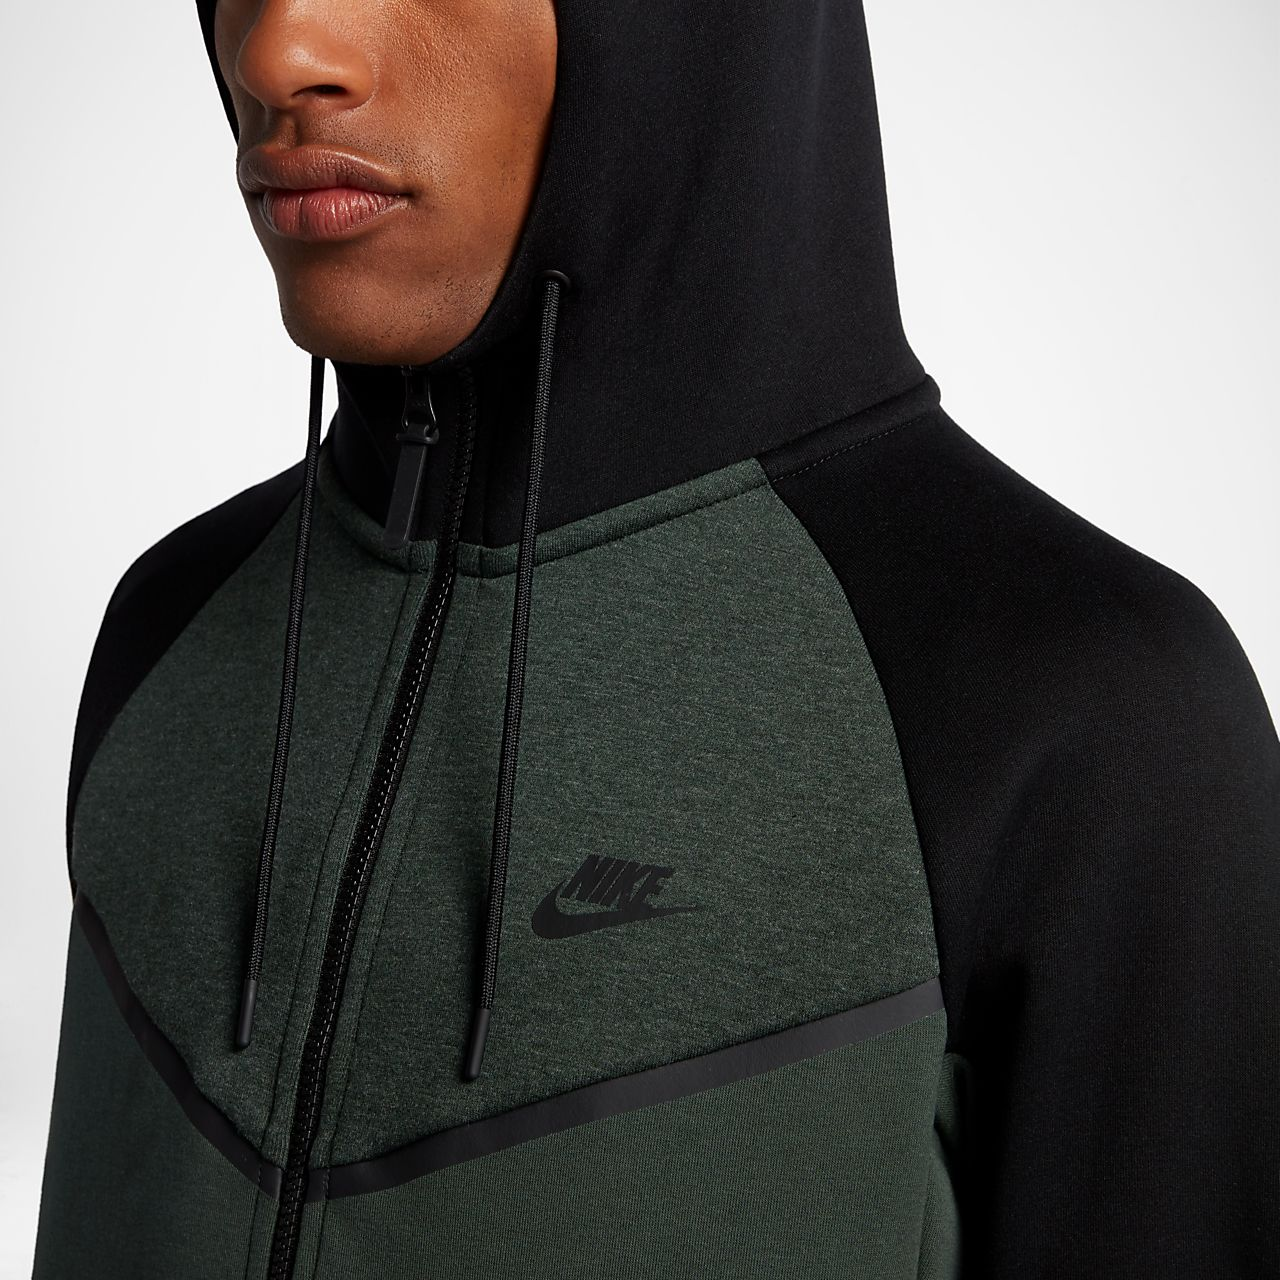 f9be1d41af09 Nike Sportswear Tech Fleece Windrunner Men s Full-Zip Hoodie. Nike ...